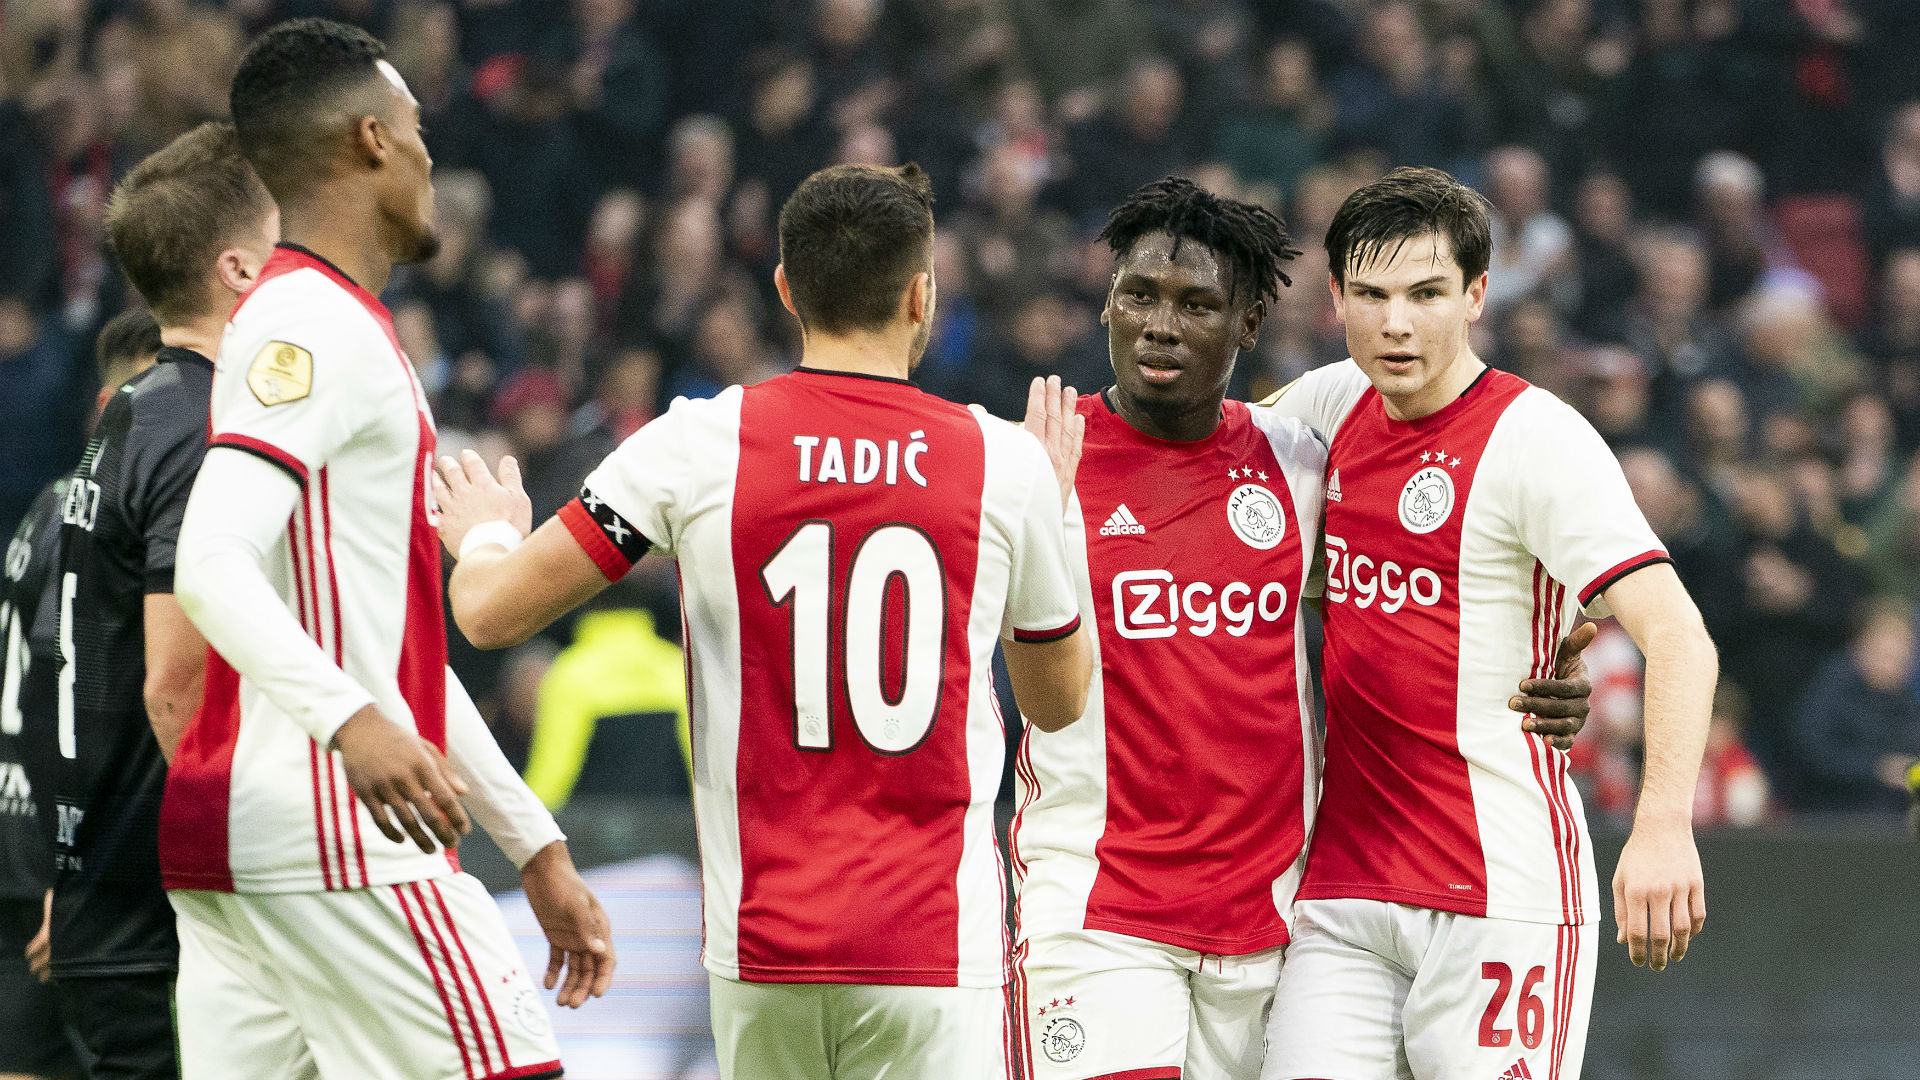 Champions League: Records tumble for Traore as Ajax hold Atalanta